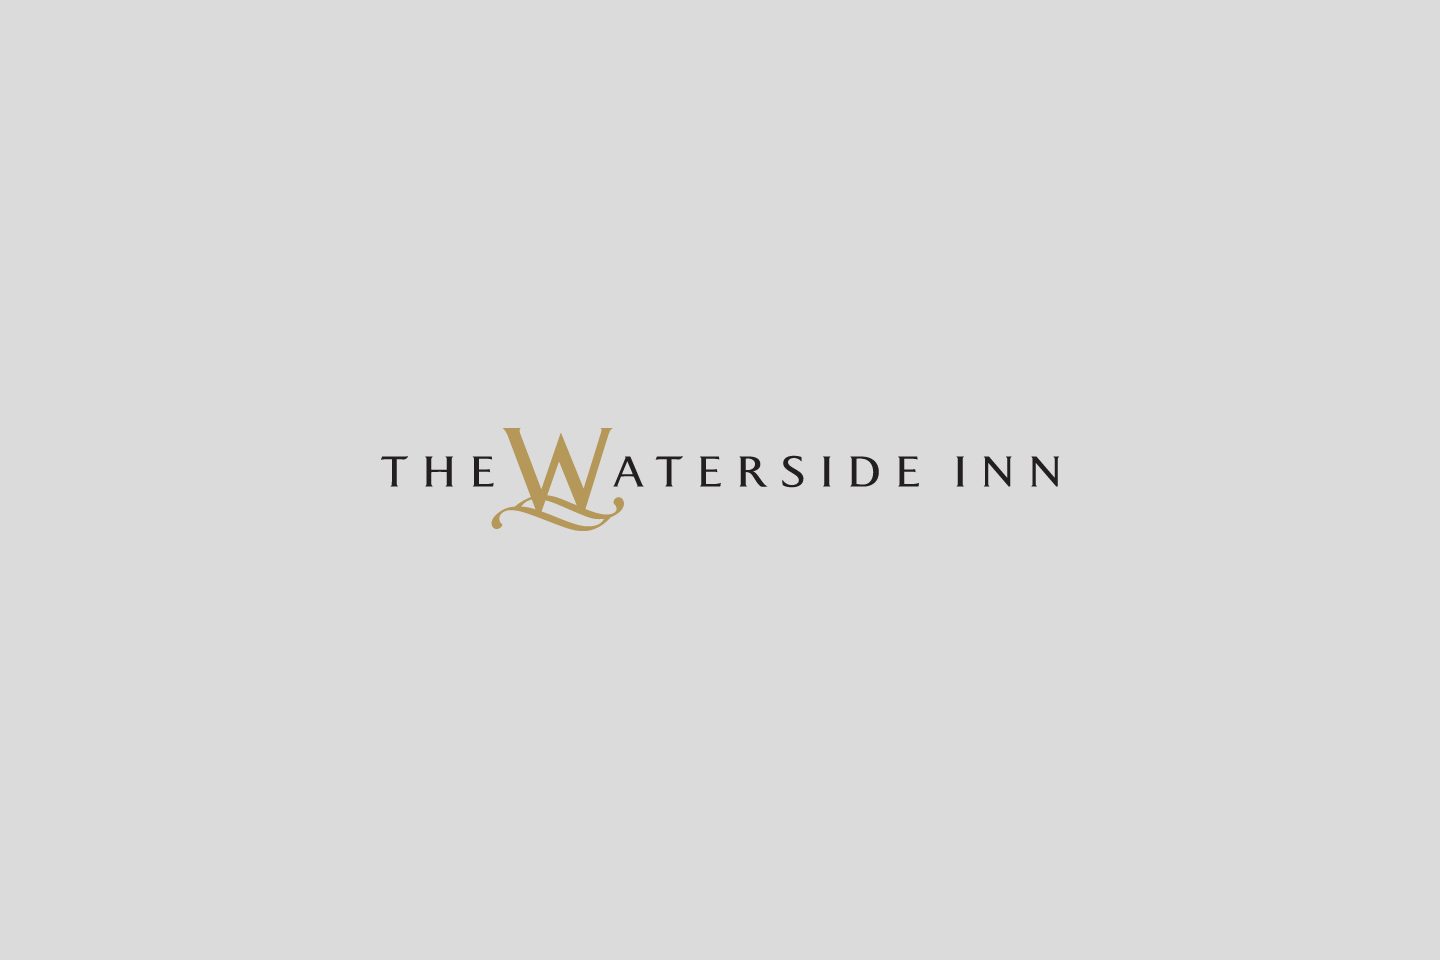 The Waterside Inn logo